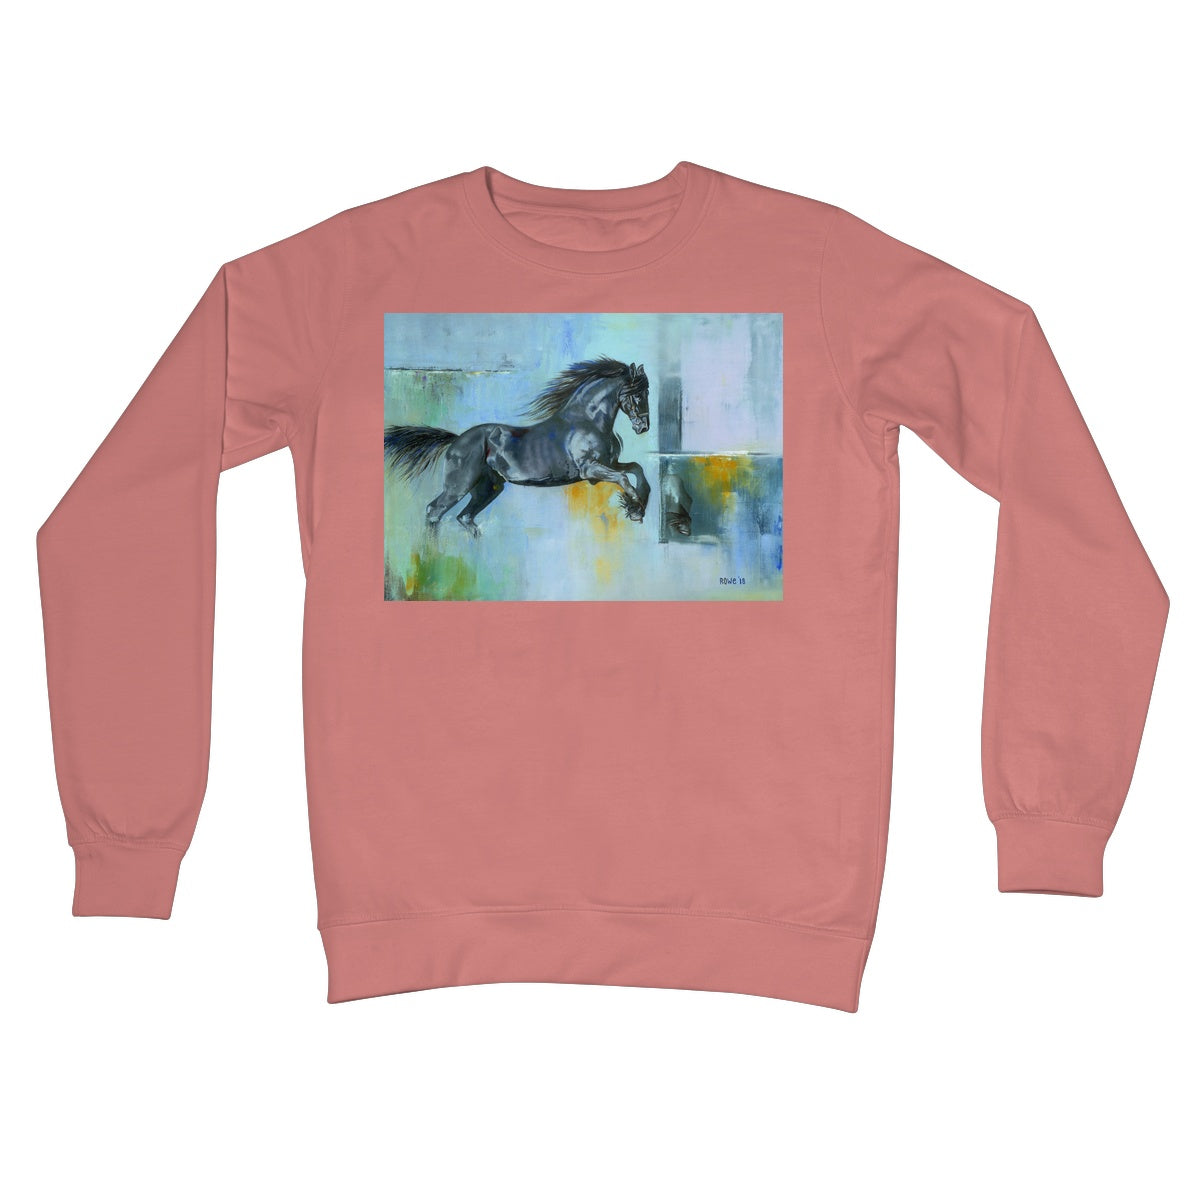 Thunder at Low Tide Crew Neck Sweatshirt